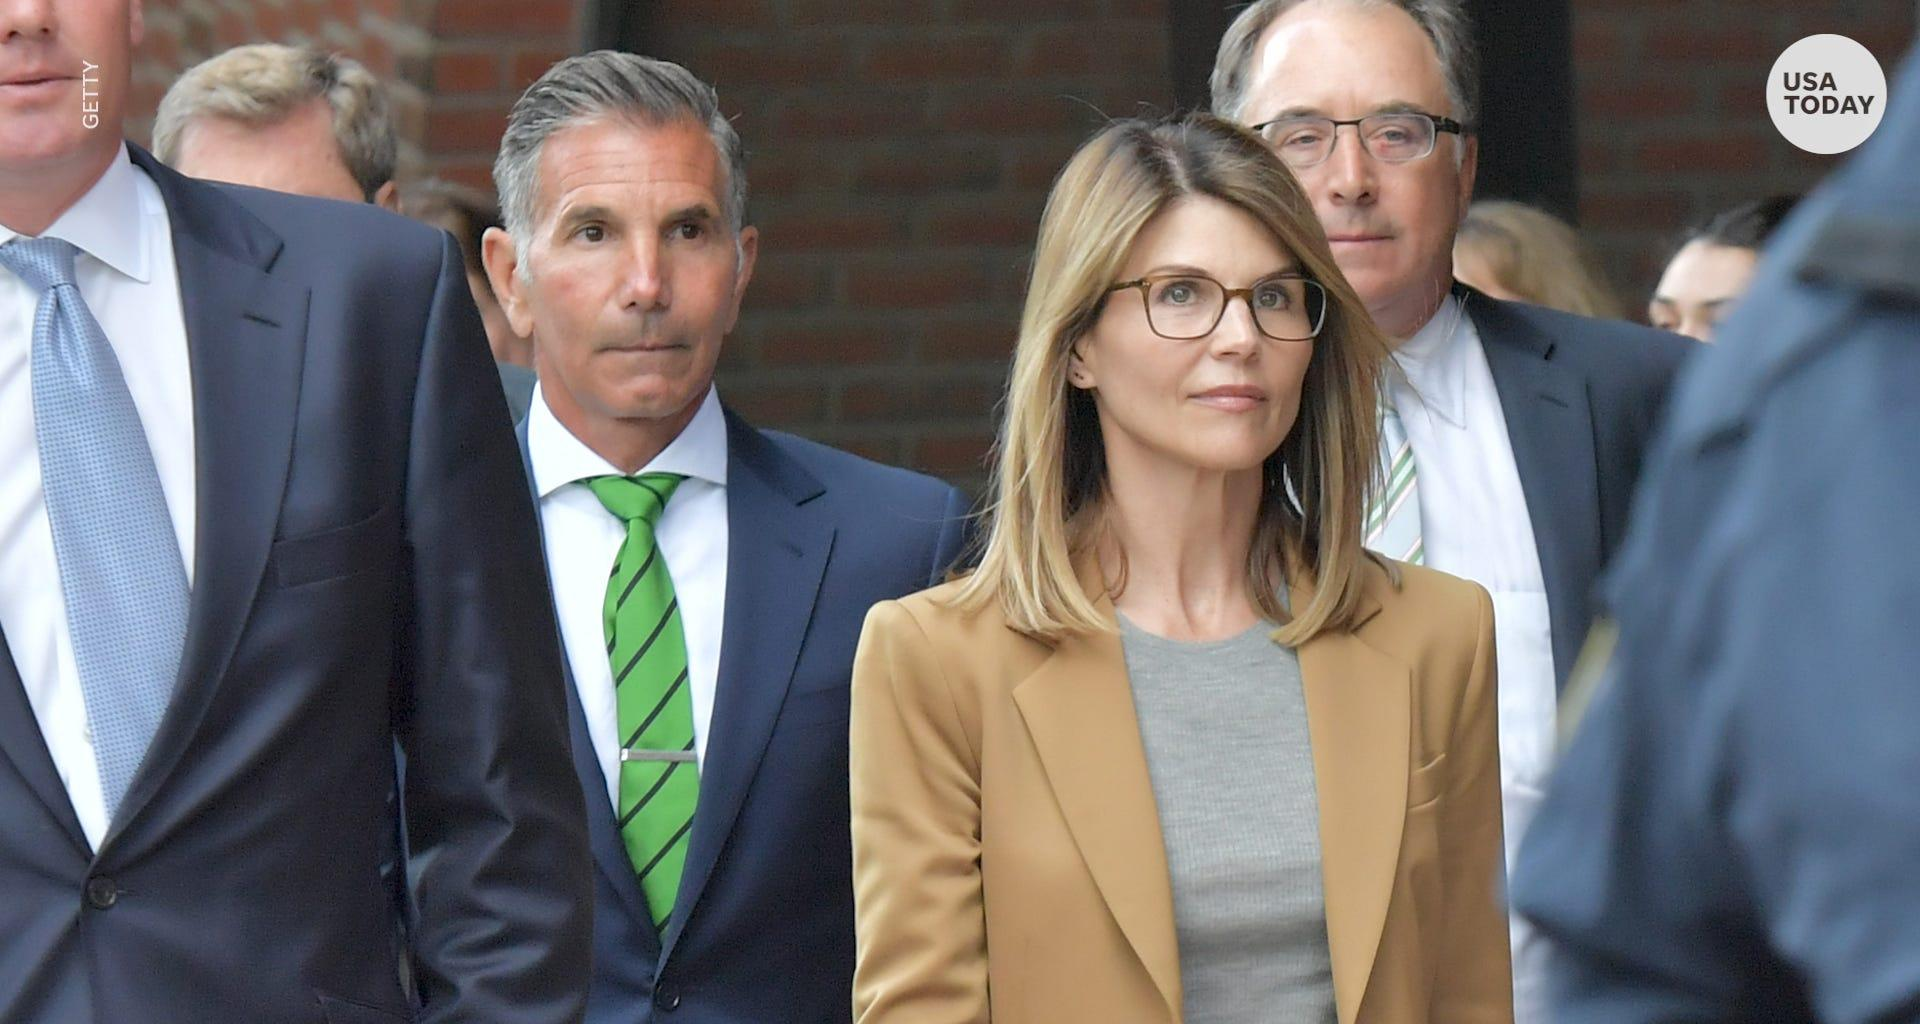 Lori Loughlin And Mossimo Giannulli Reportedly 'Terrified' About Going To Jail Soon